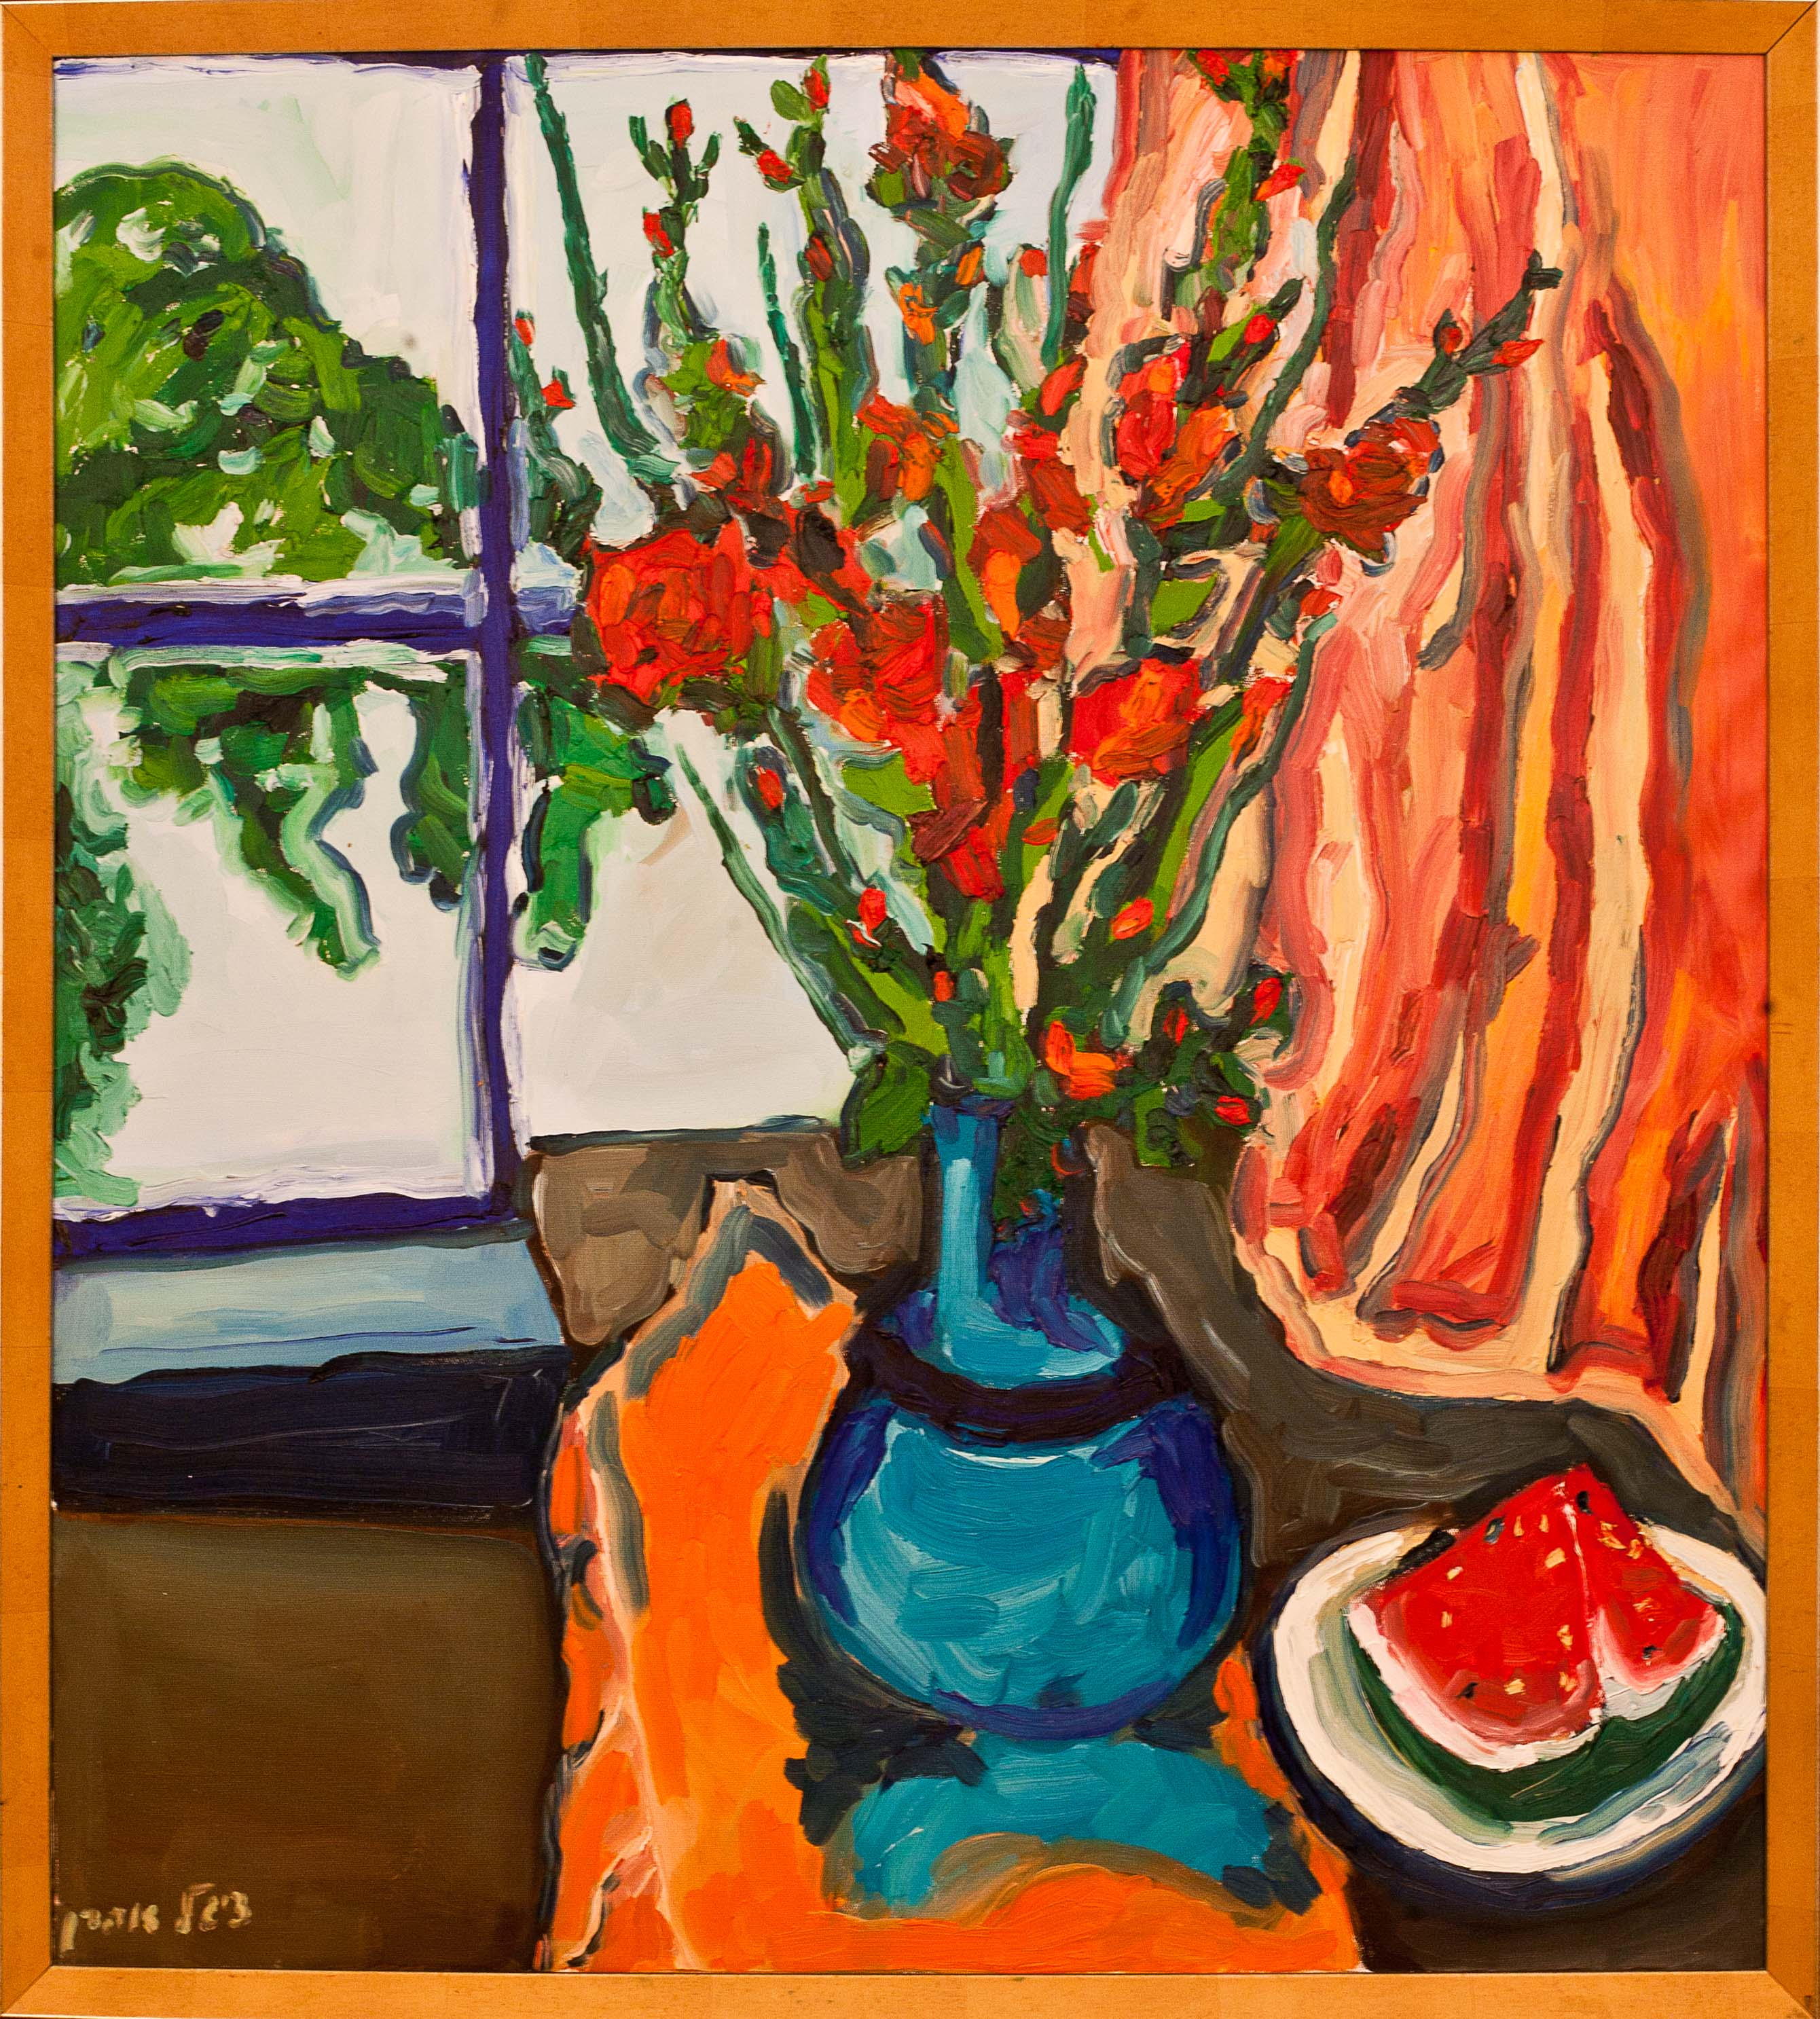 Stillife by Unknown. Oil on canvas. 39.0 in x 35.0 in. 1990